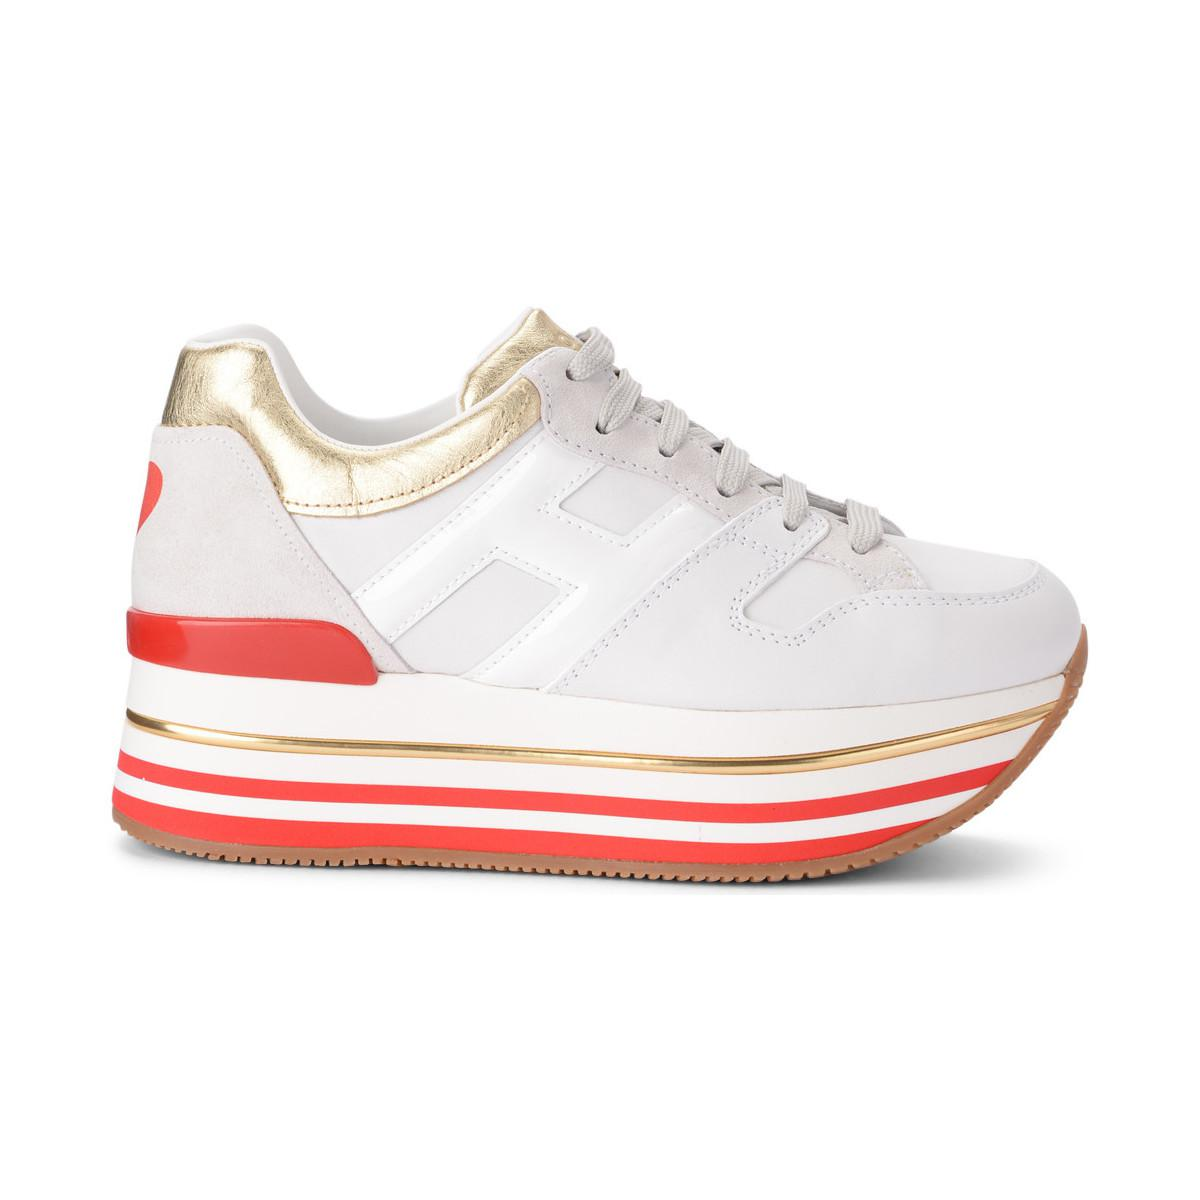 ebe628c7c Hogan. H222 Maxi White And Gold Leather Trainer Women's Shoes ...